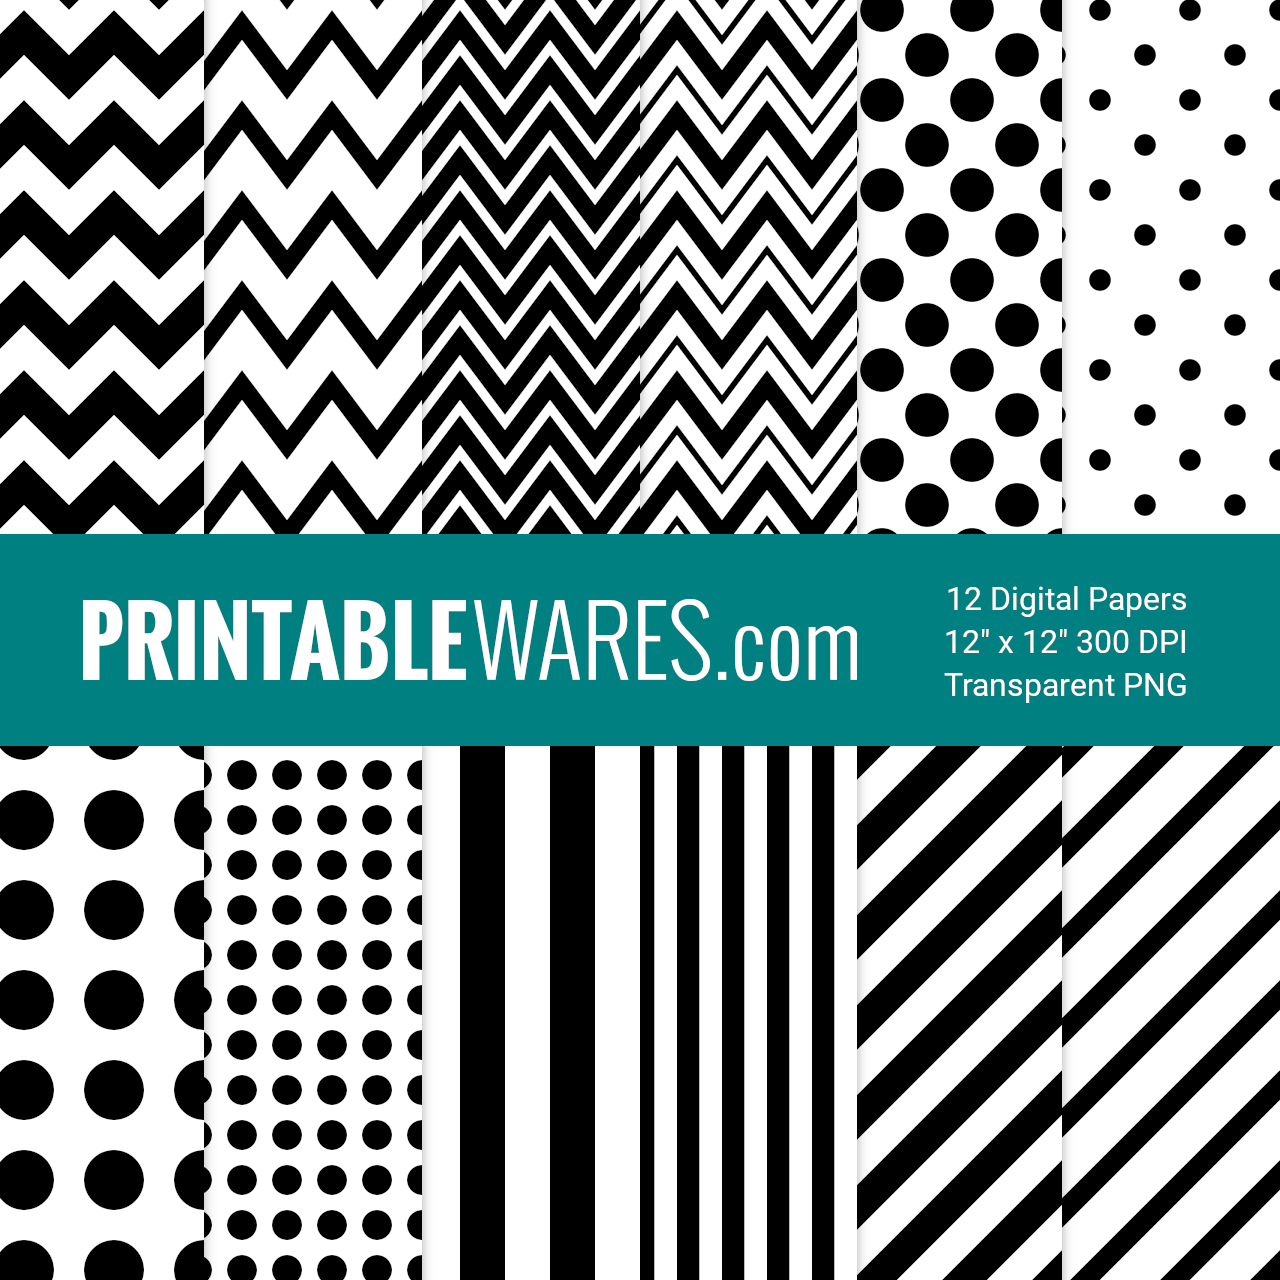 Free Printable Black and White Scrapbook Papers